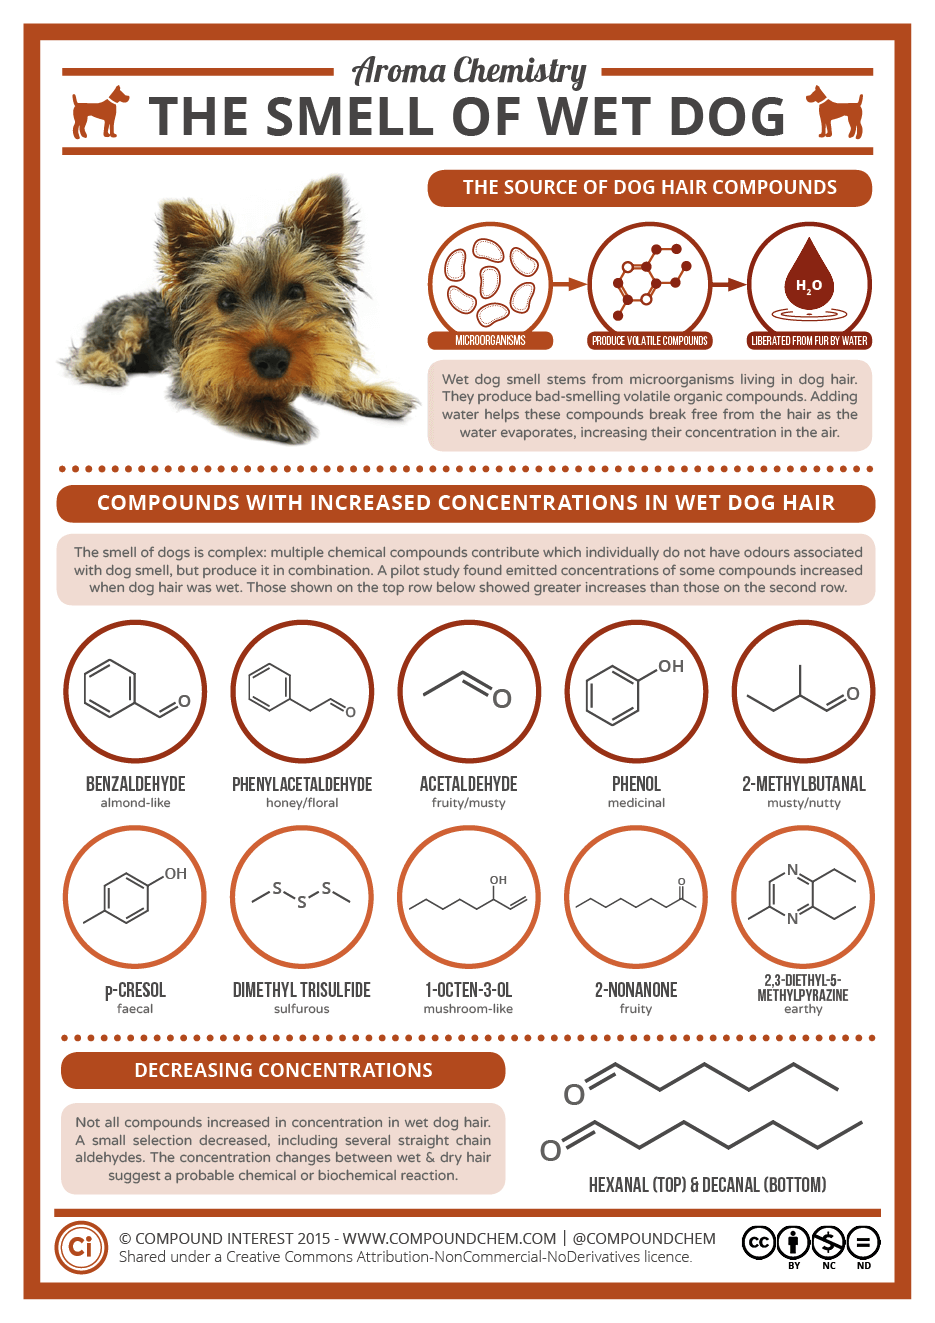 Aroma Chemistry - The Smell of Wet Dog